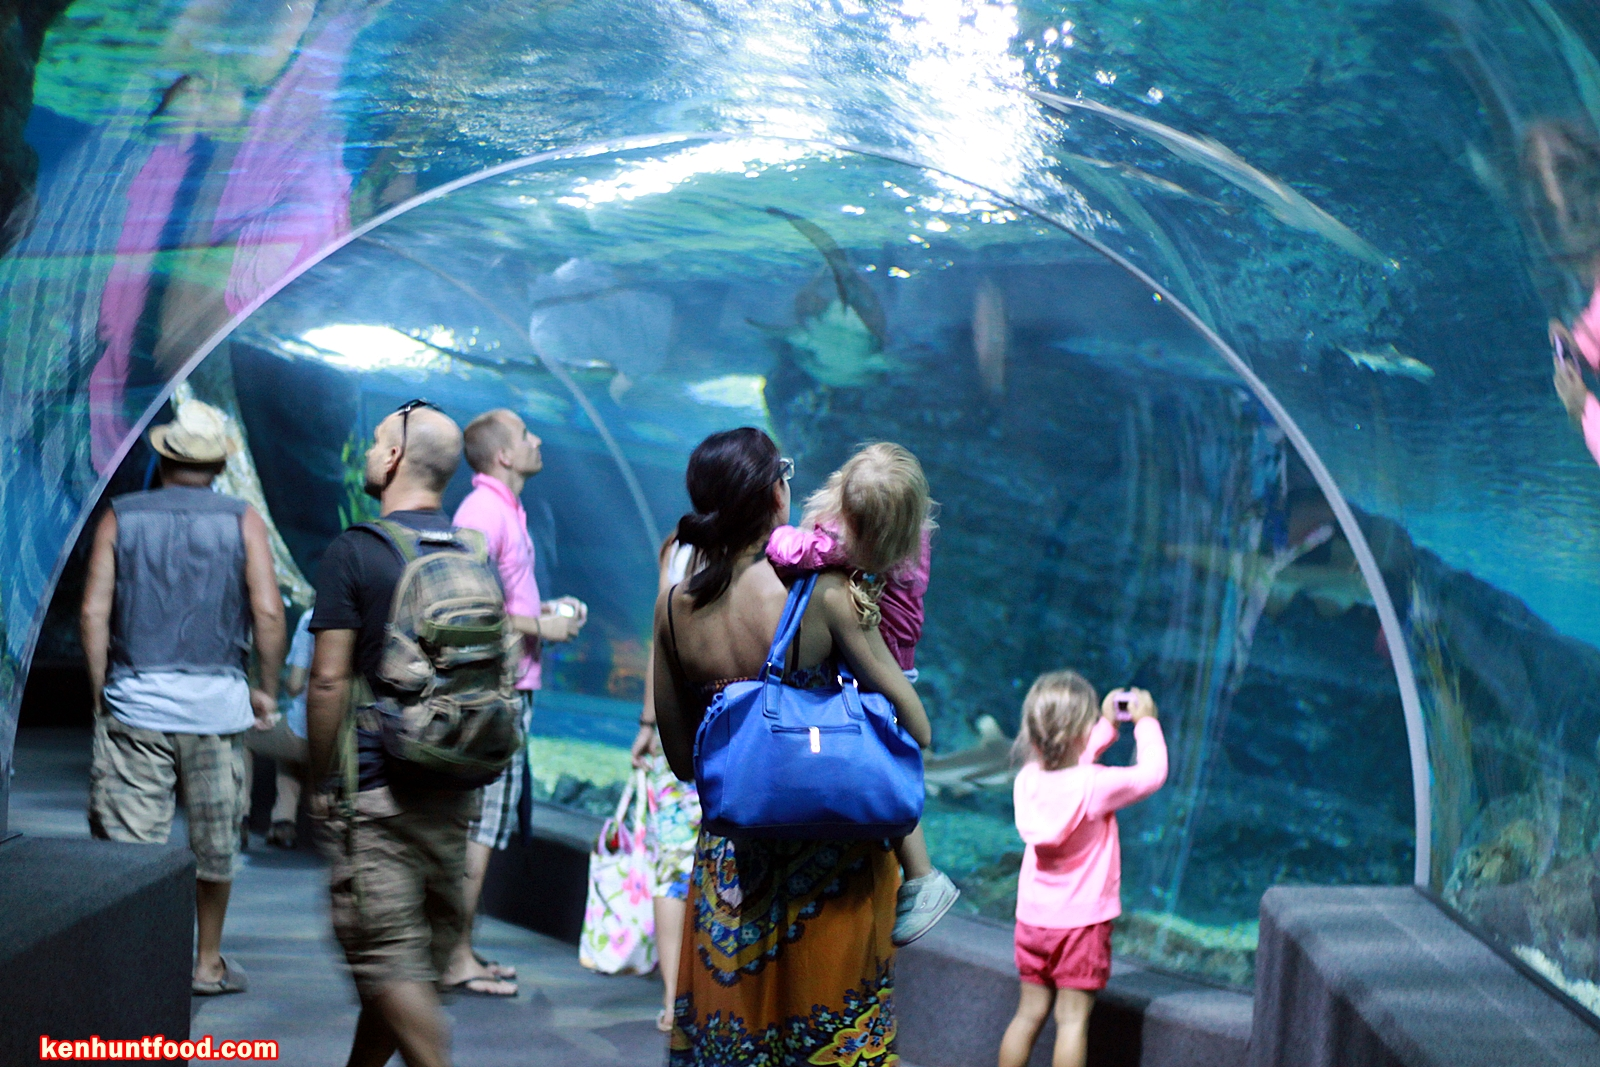 Ken Hunts Food Suggested Itinerary Bangkok Thailand Travel And Et Ticket Sea Life Ocean World Aquarium Only Adult Partake In A Fun Filled Family Activities At One Of The Largest Aquariums South East Asia Housed Within Iconic Siam